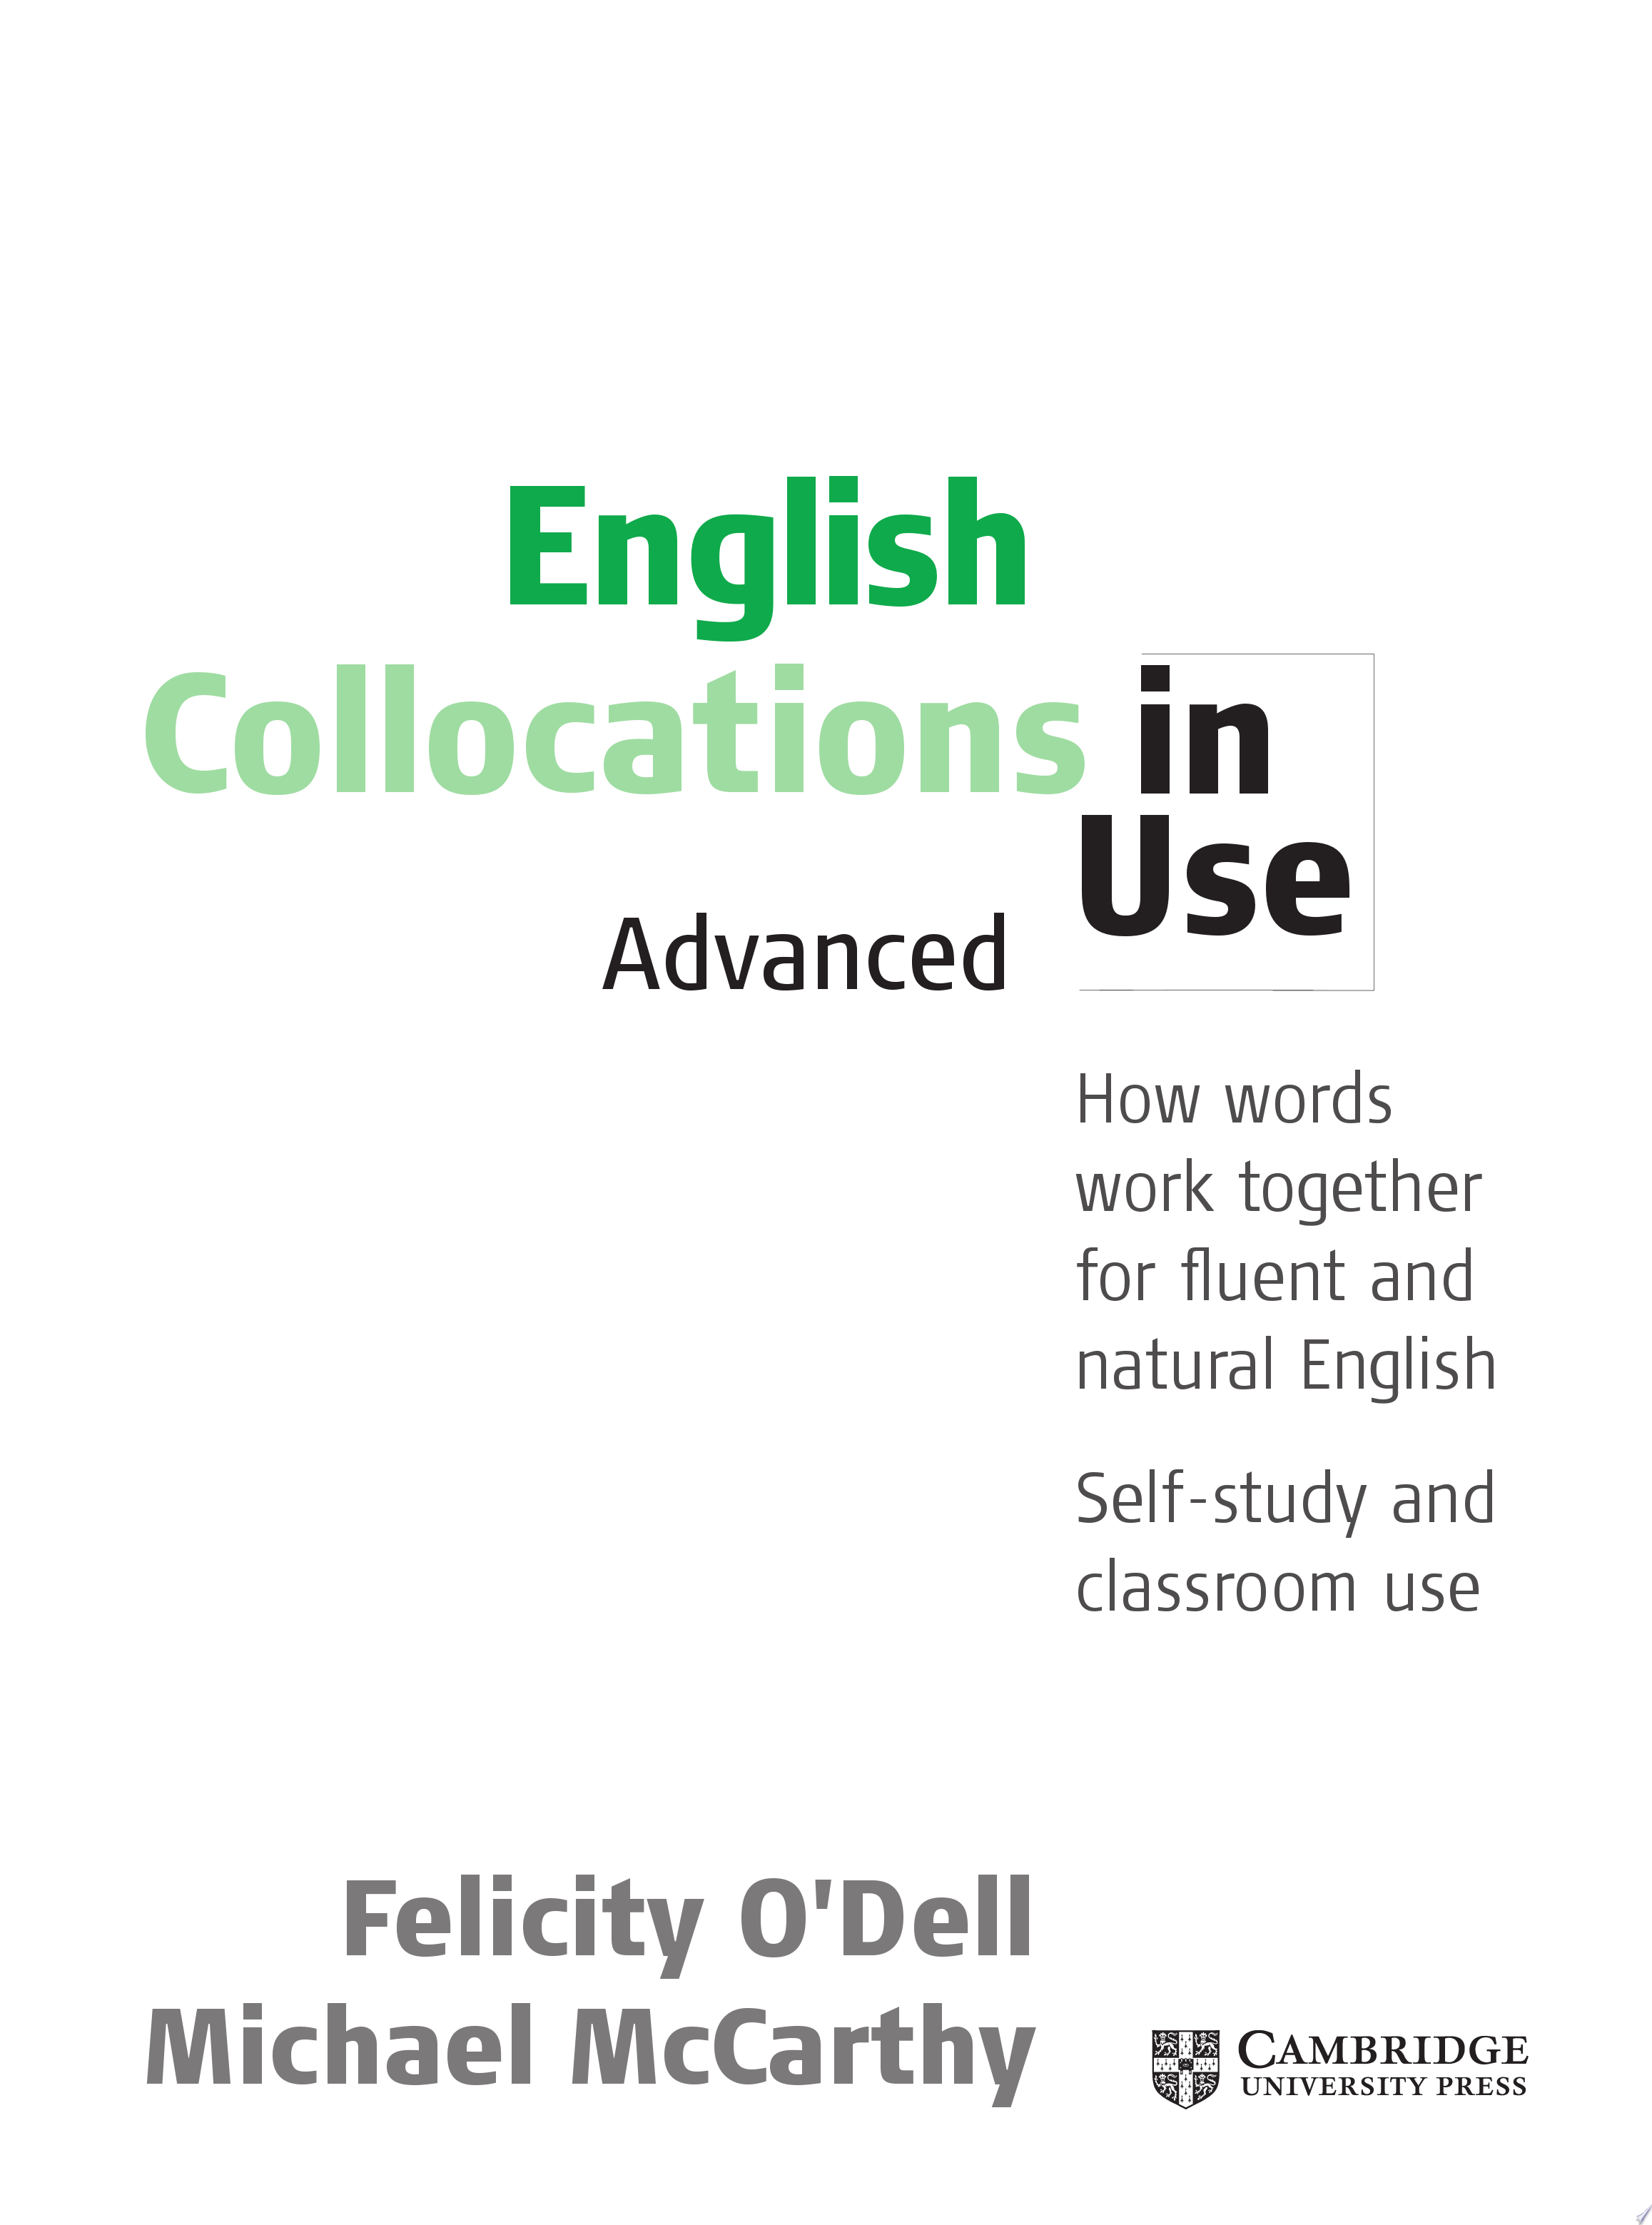 English collocations in use   advanced   how words work together for fluent and natural English   self study and classroom use